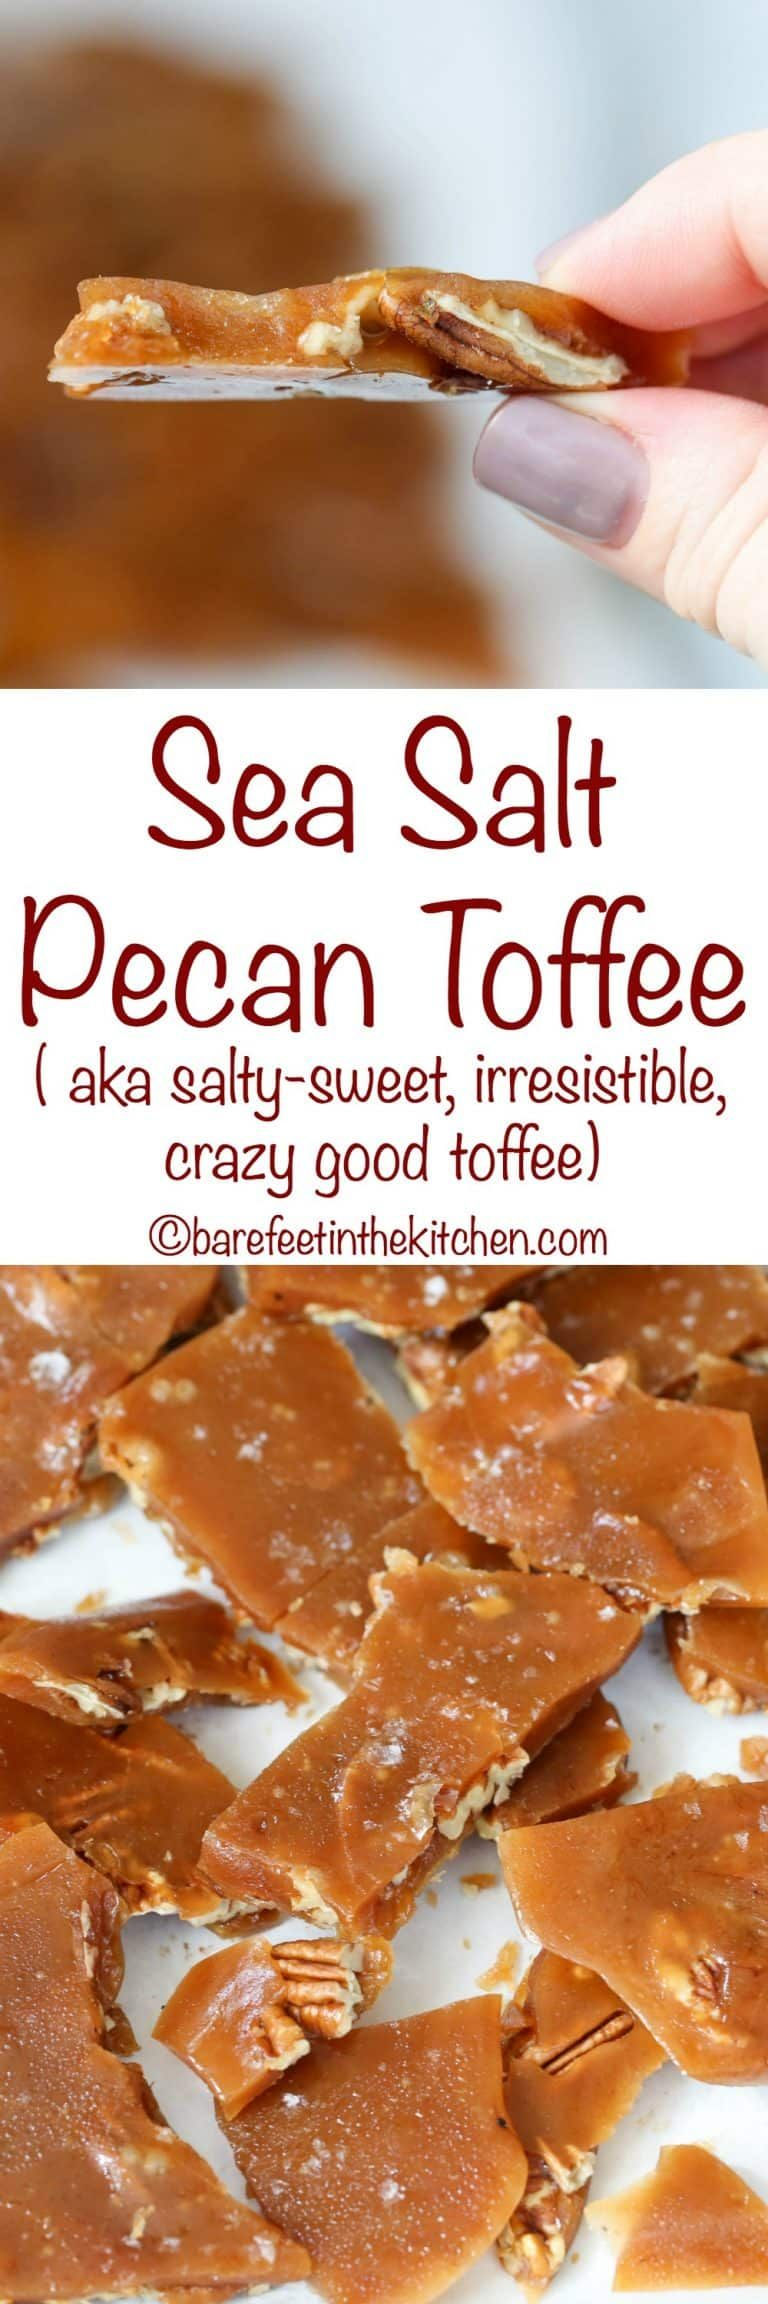 Sea Salt Pecan Toffee is a dream come true! get the recipe at barefeetinthekitchen.com